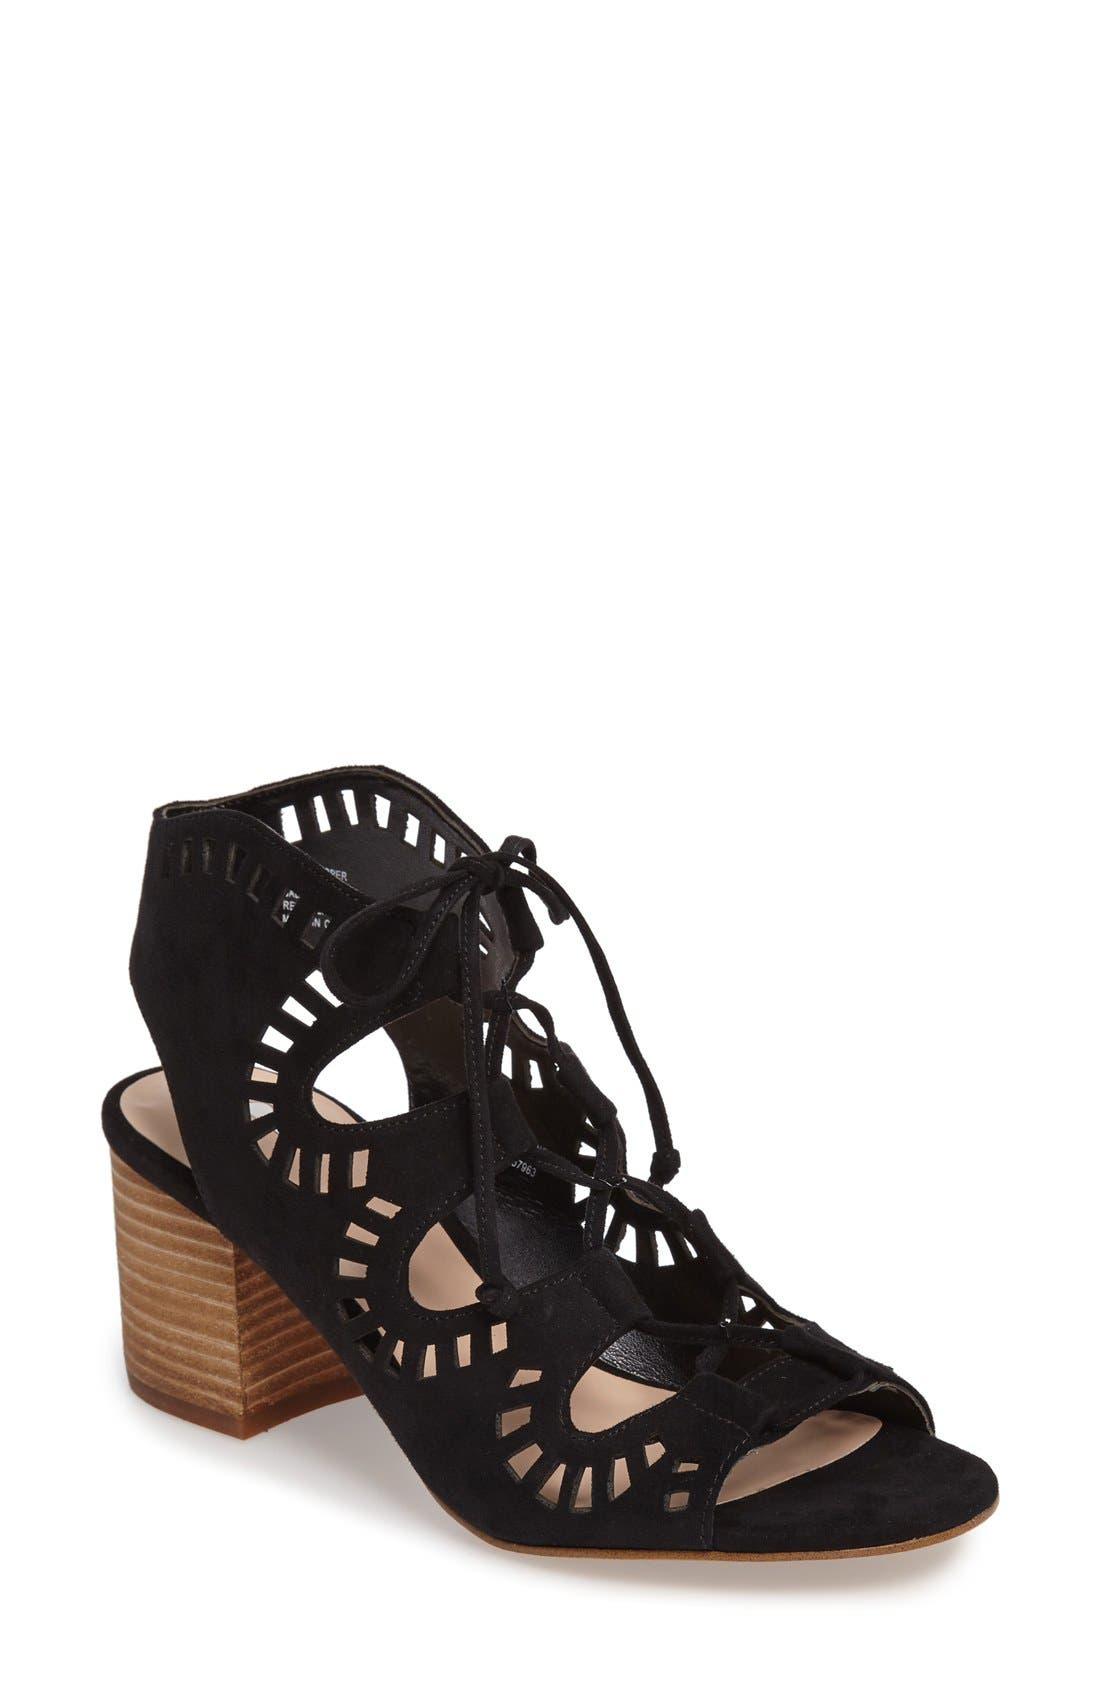 Main Image - BP. Decker Lace-Up Sandal (Women)